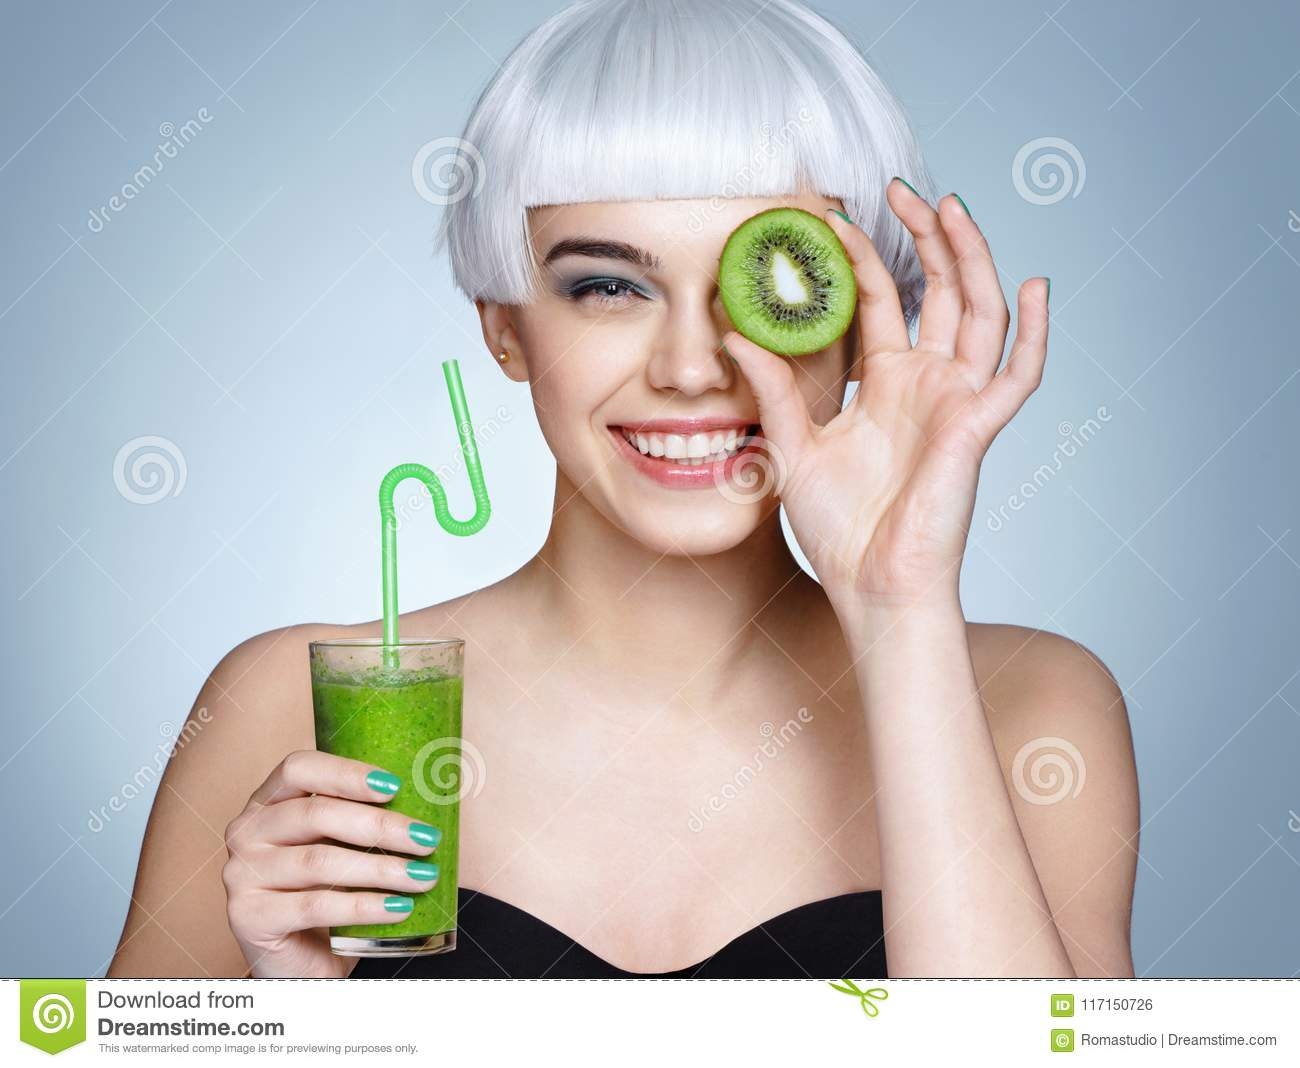 Smiling young girl holding smoothie detox cocktail of kiwi fruit